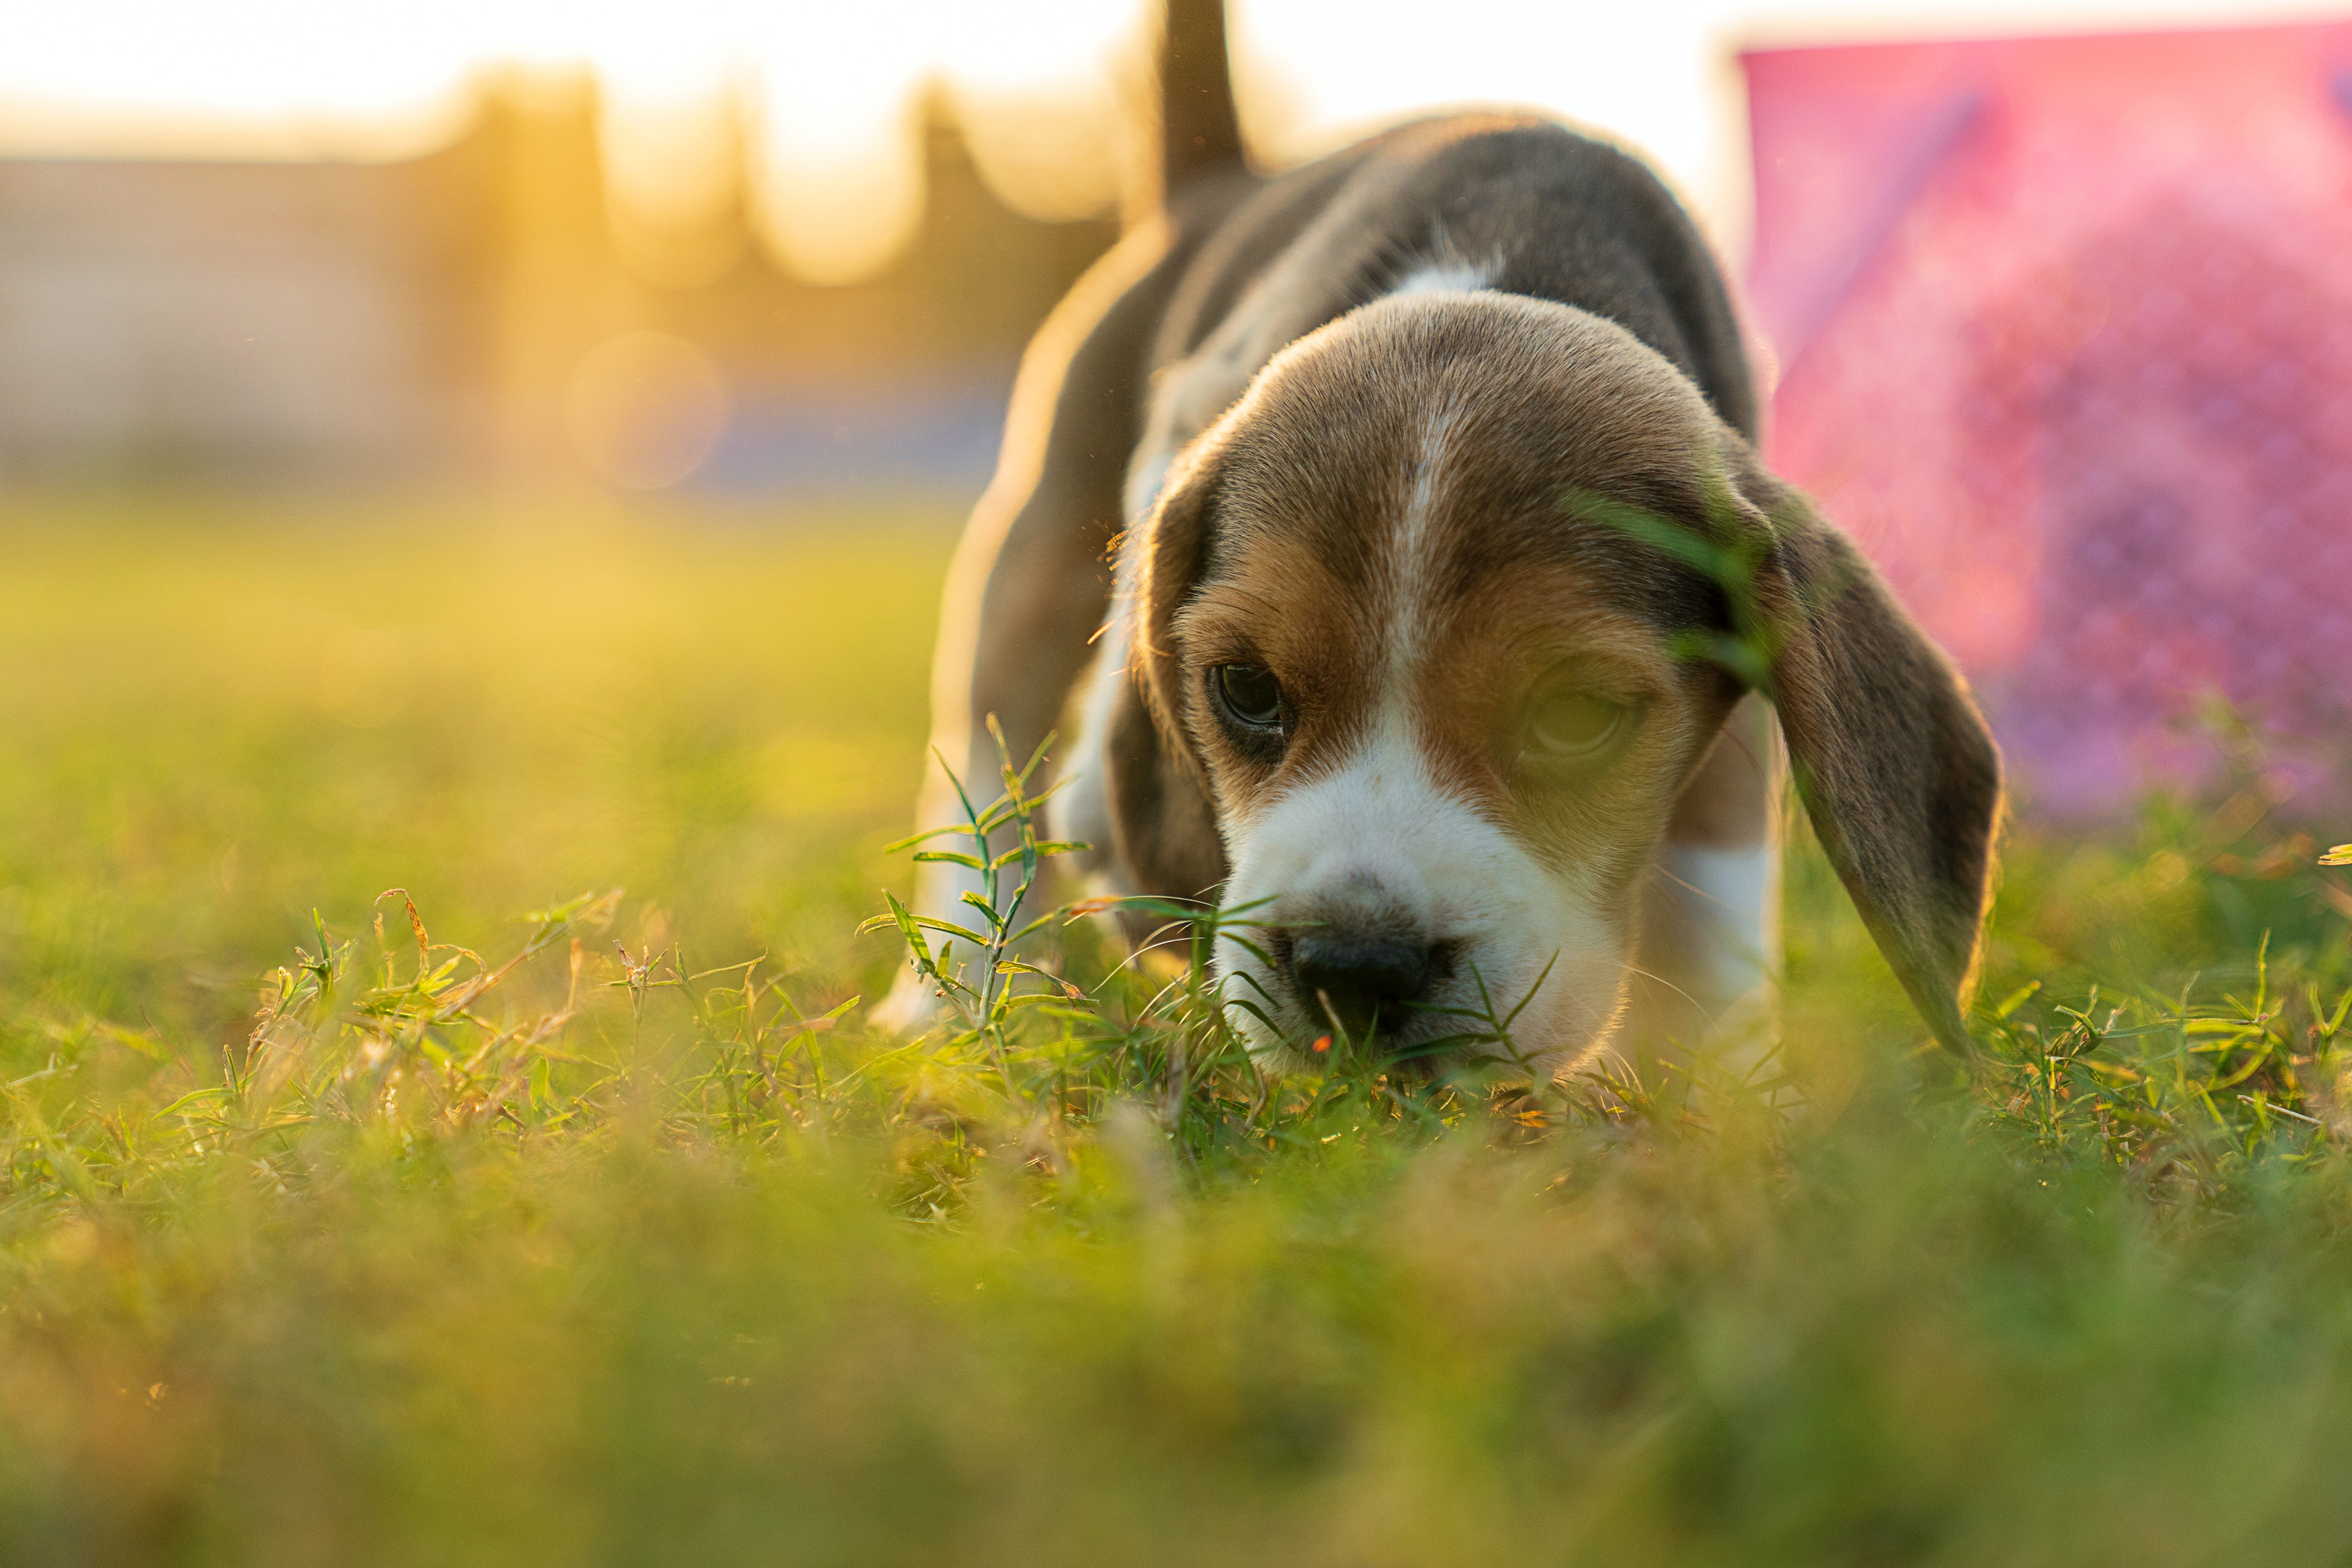 Dog Adoption Has Increased by 12 Over the Course of the Pandemic